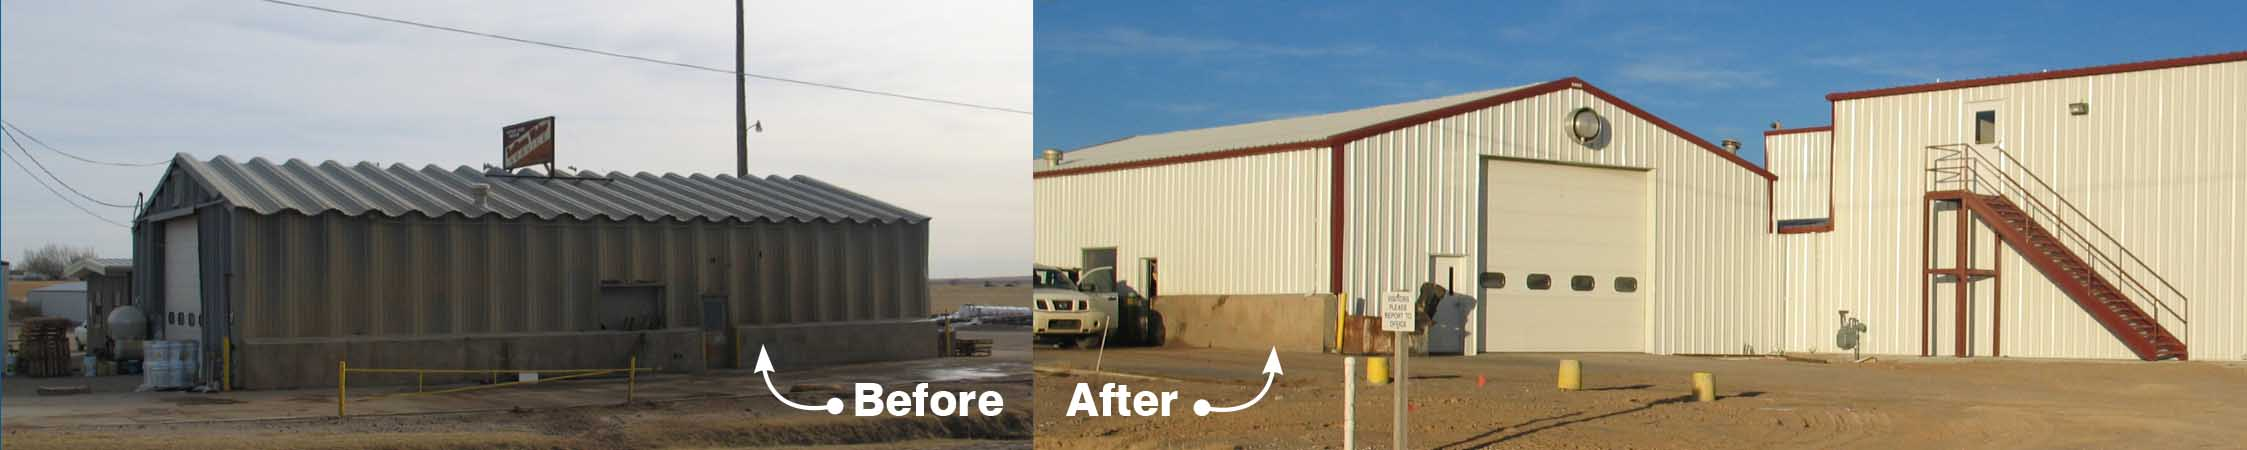 Behlen Retrofit Roofs Before and After